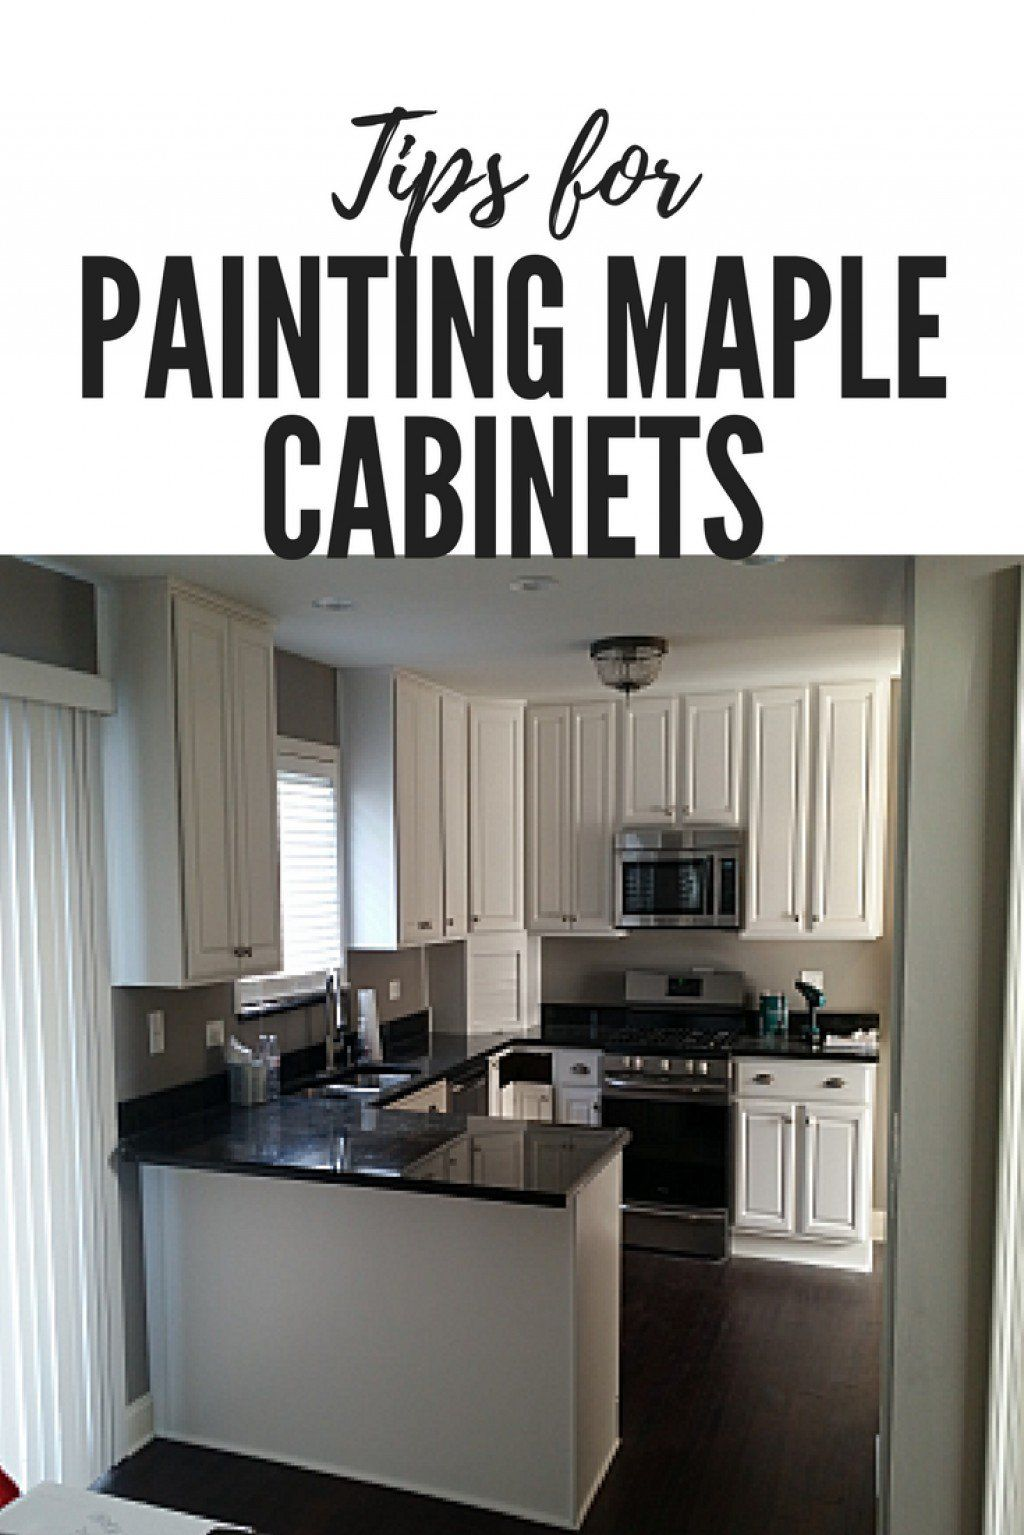 Tips for painting maple cabinets in kitchen pinterest